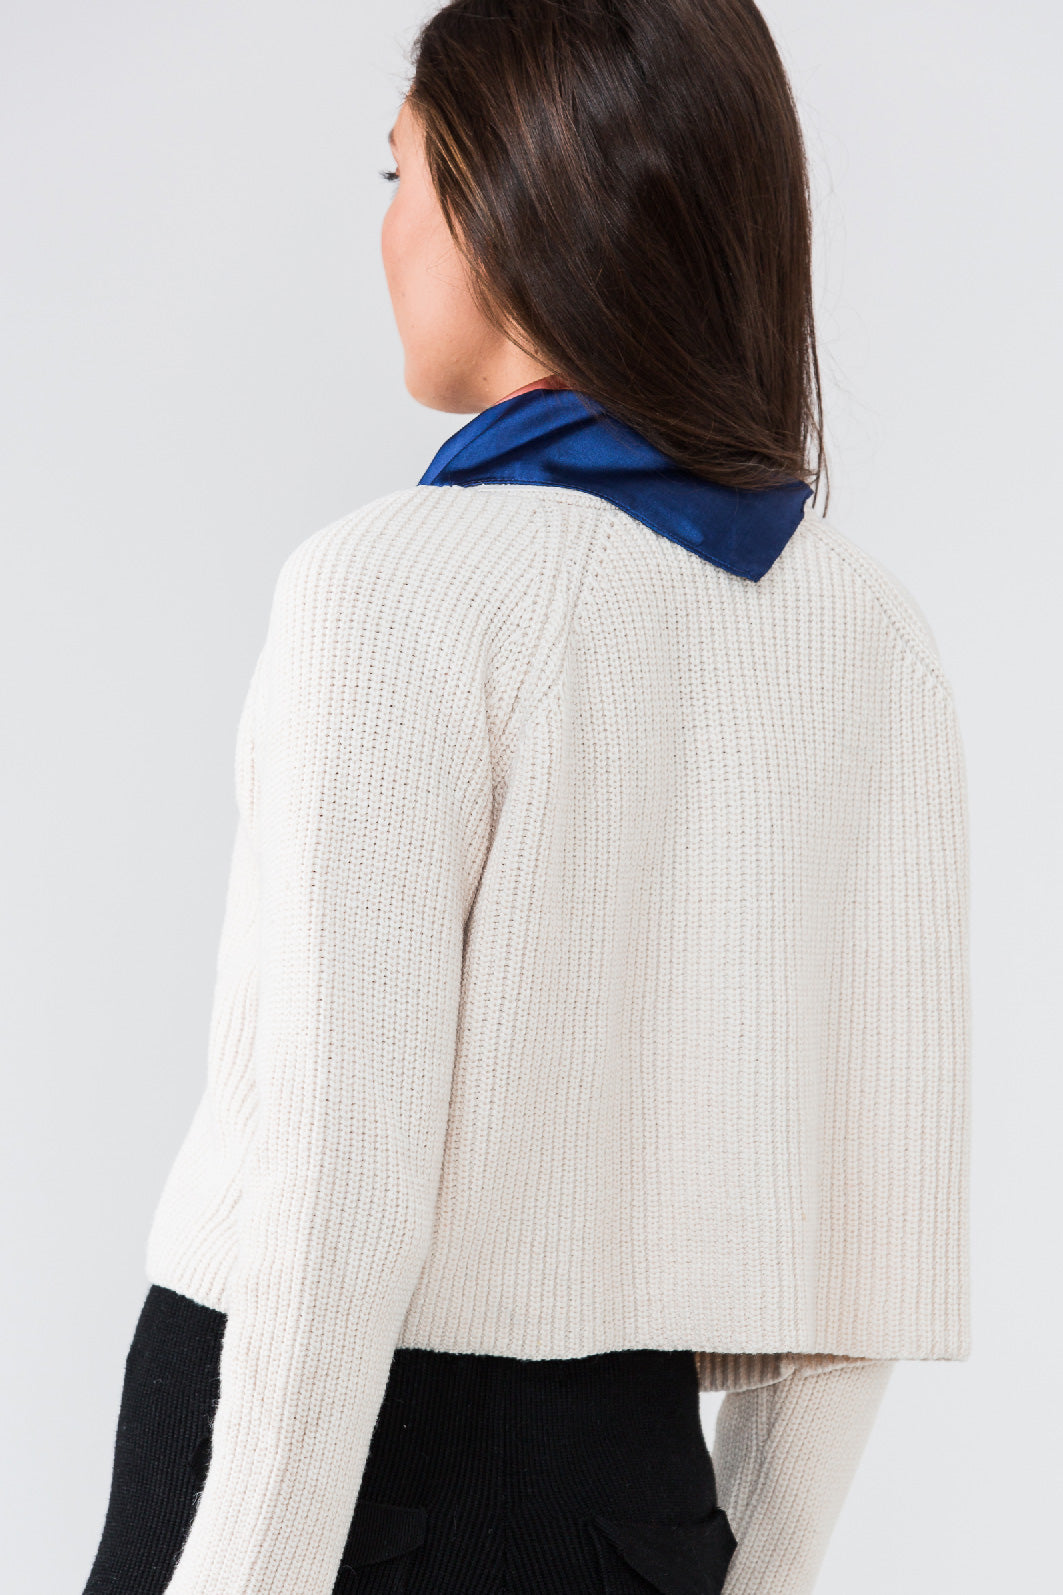 JACKIE O KNIT TOP